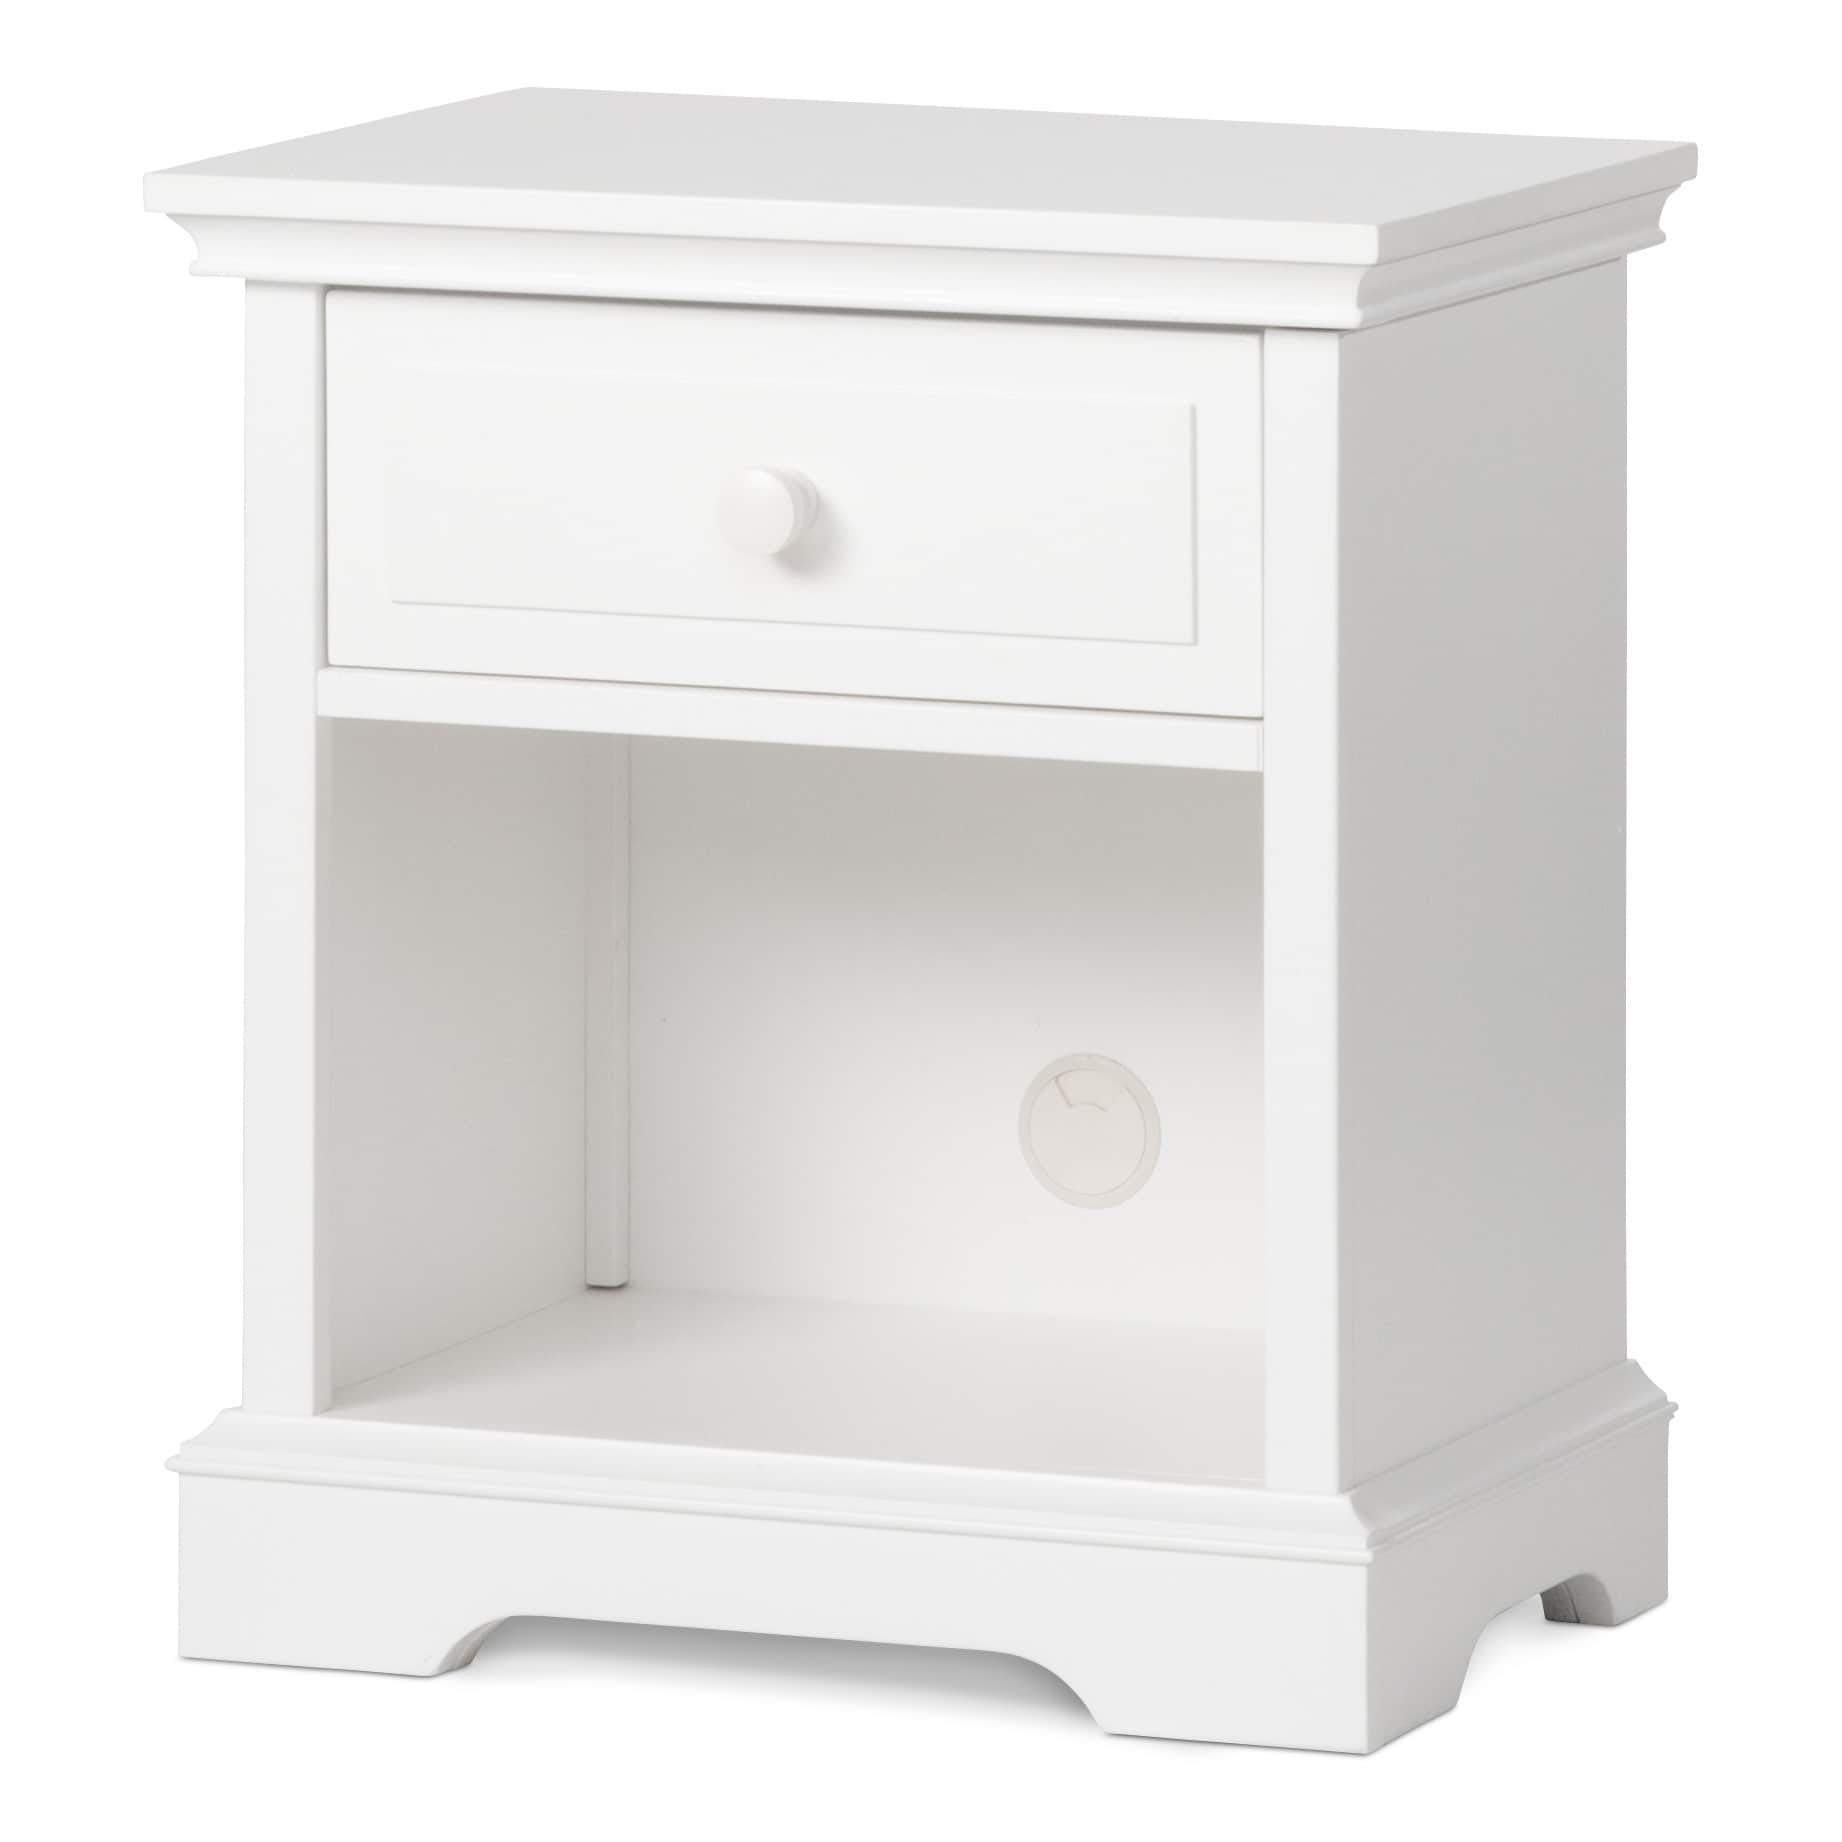 Child Craft Universal Select Night Stand, Matte White by Childcraft